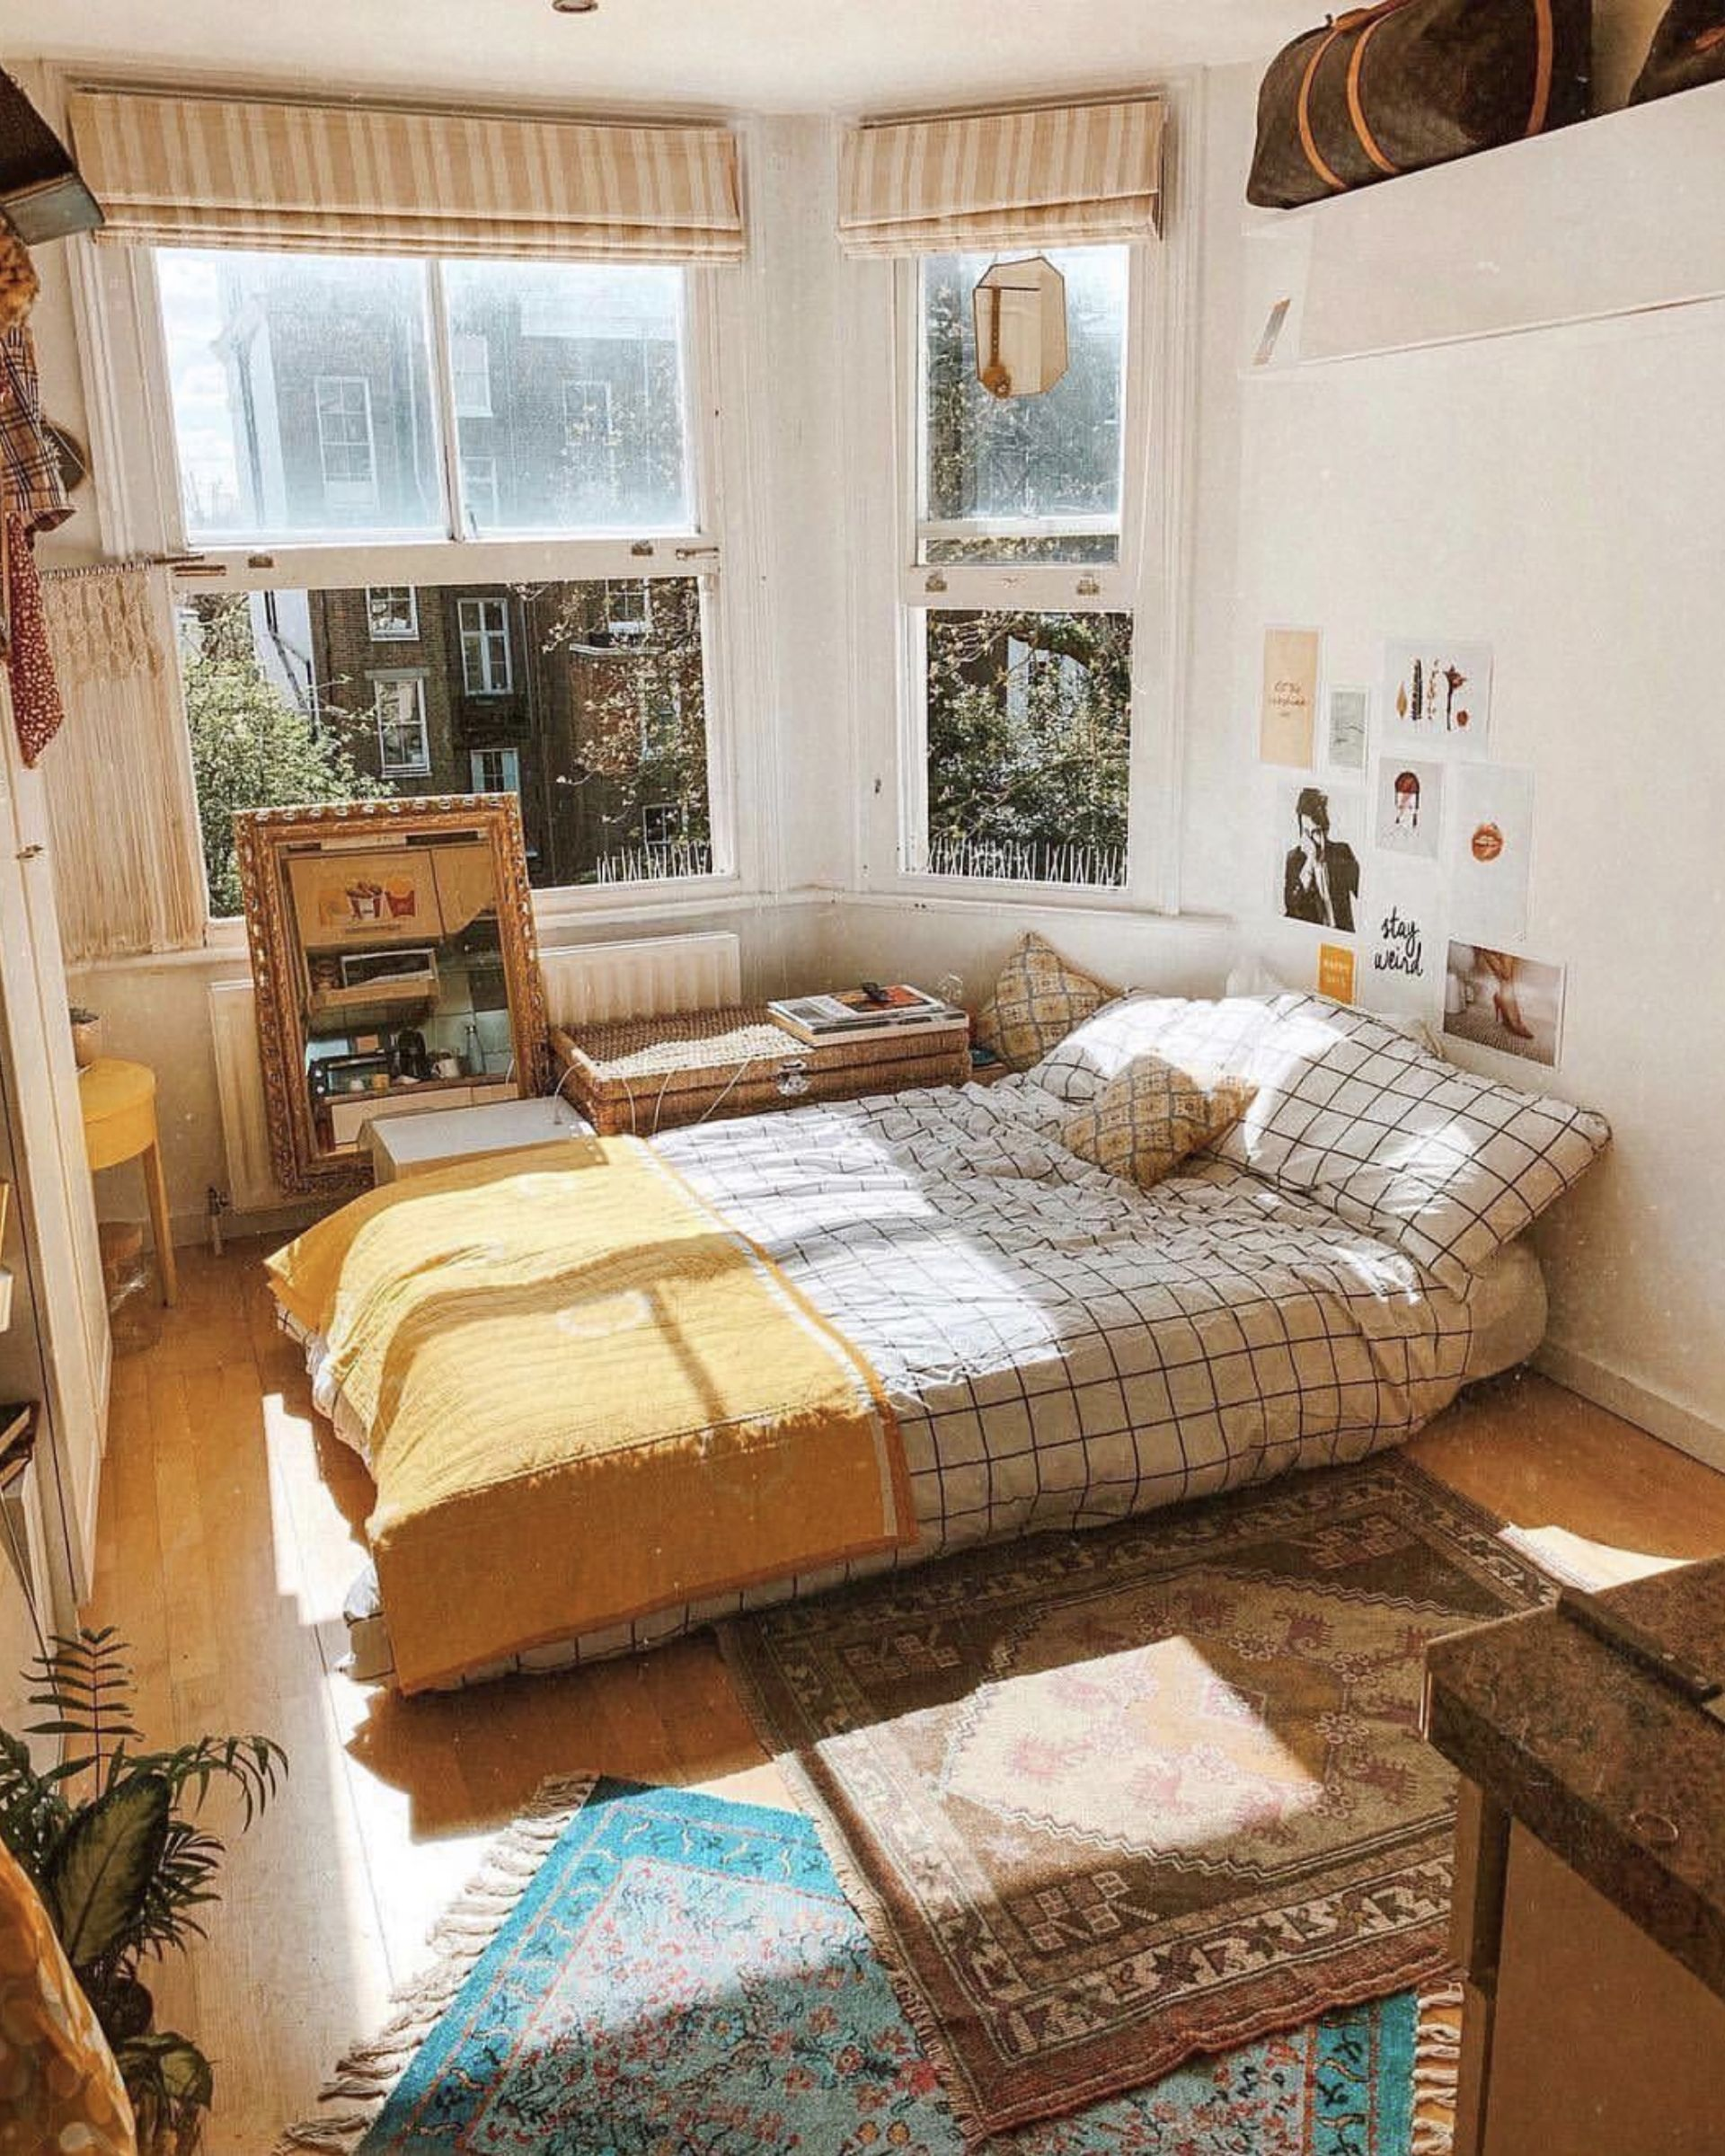 A Vintage Bedroom By Urbanoutfitters Click The Image To Try Our